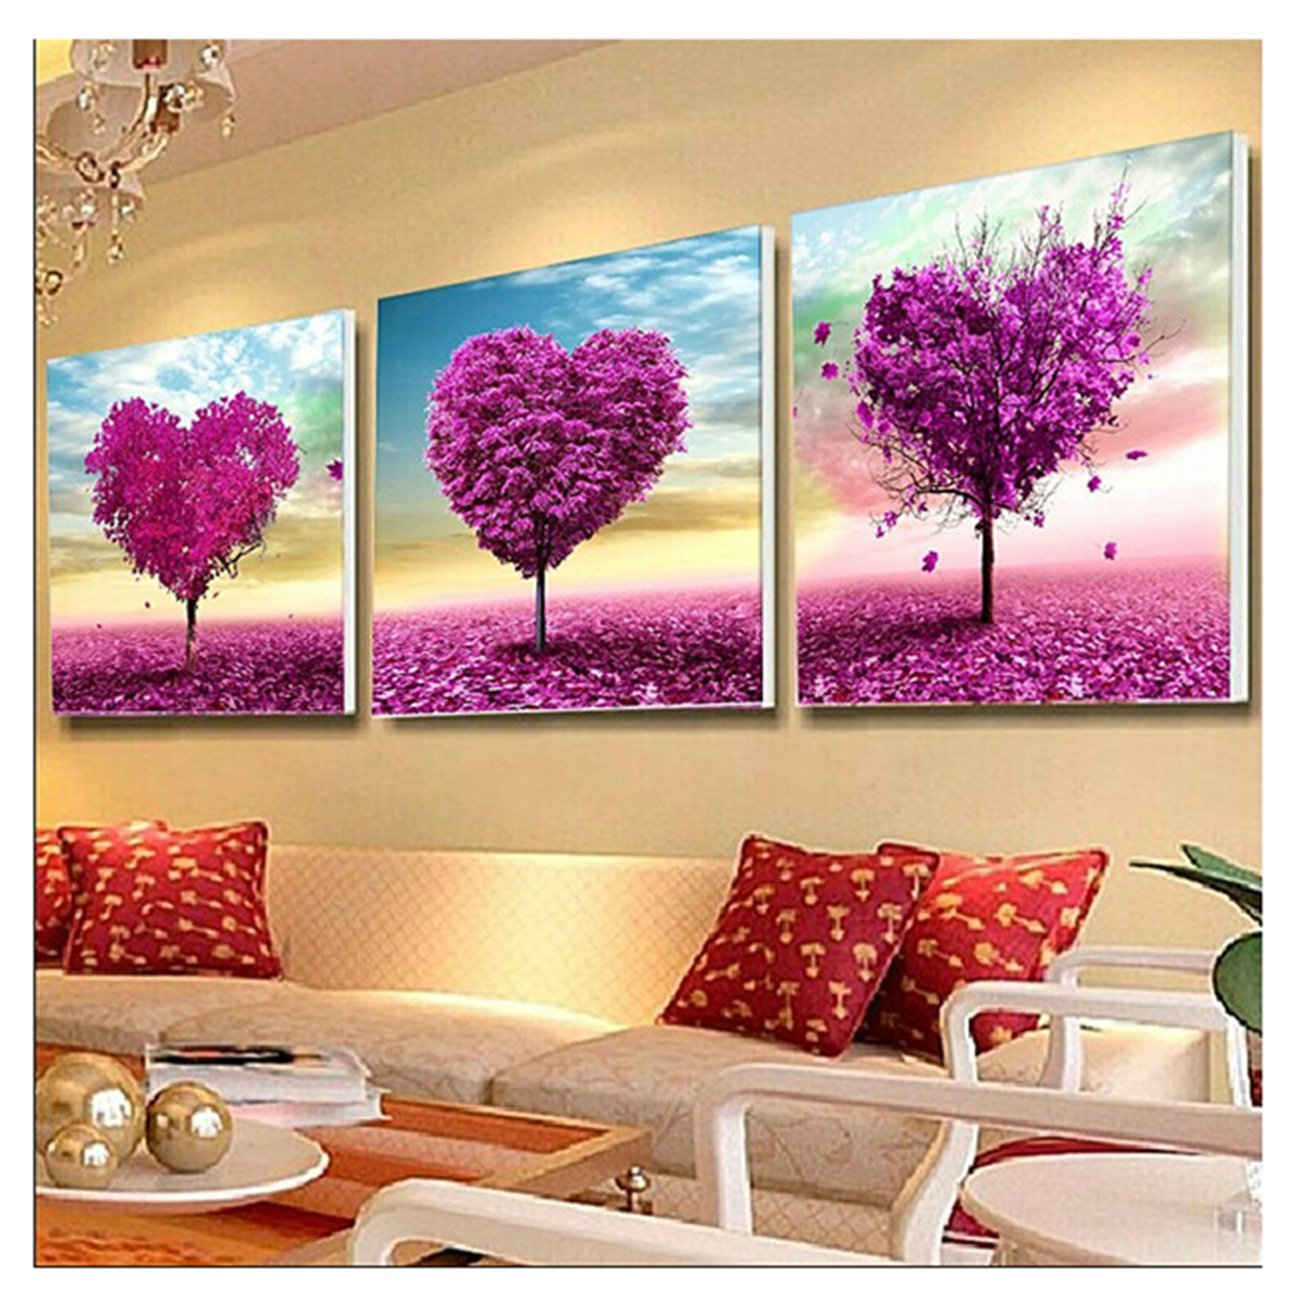 Pack of 3 [Wooden Framed] Diy Oil Painting Paint by Number Kit for Adult - Main Shape Love Tree 20x20 Inch by YXQSED